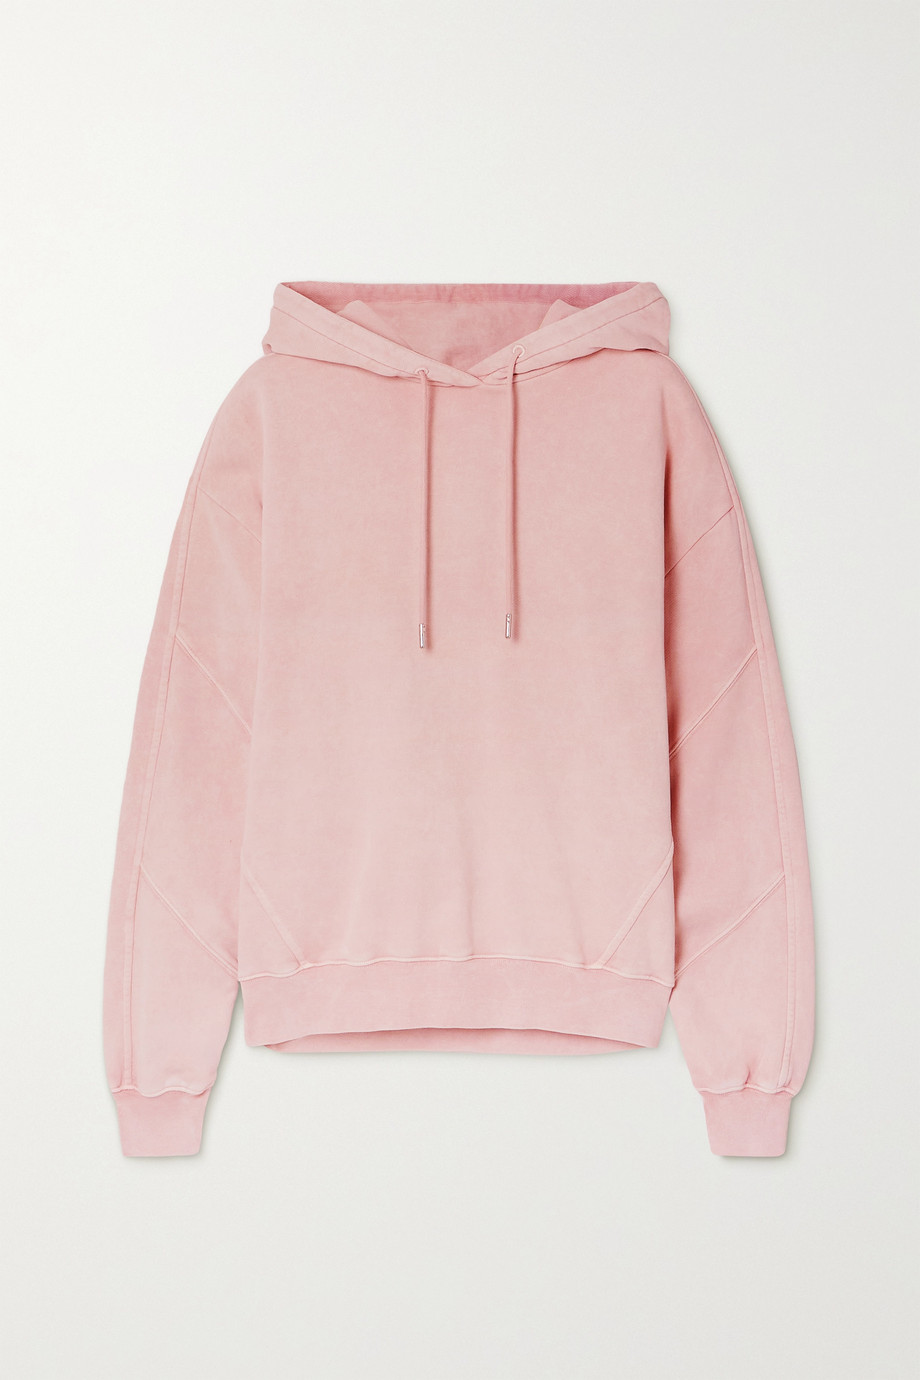 NINETY PERCENT + NET SUSTAIN paneled organic cotton-jersey hoodie